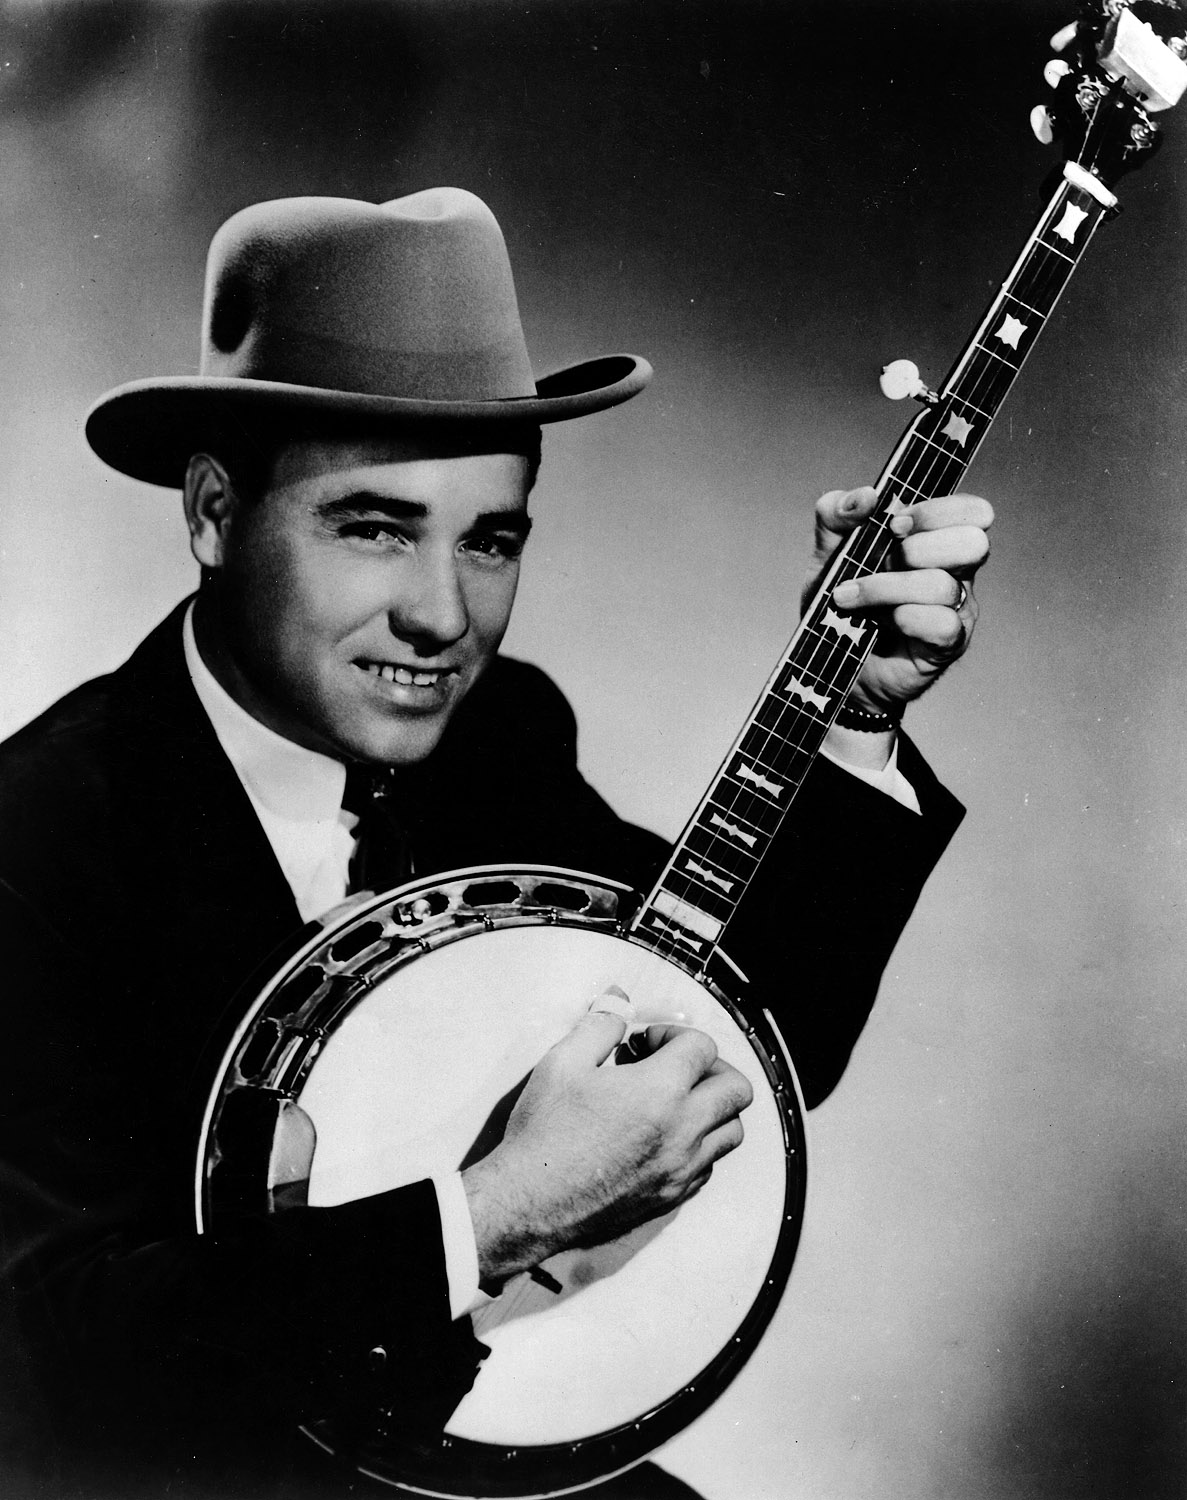 FROM THE VAULTS: Earl Scruggs born 6 January 1924